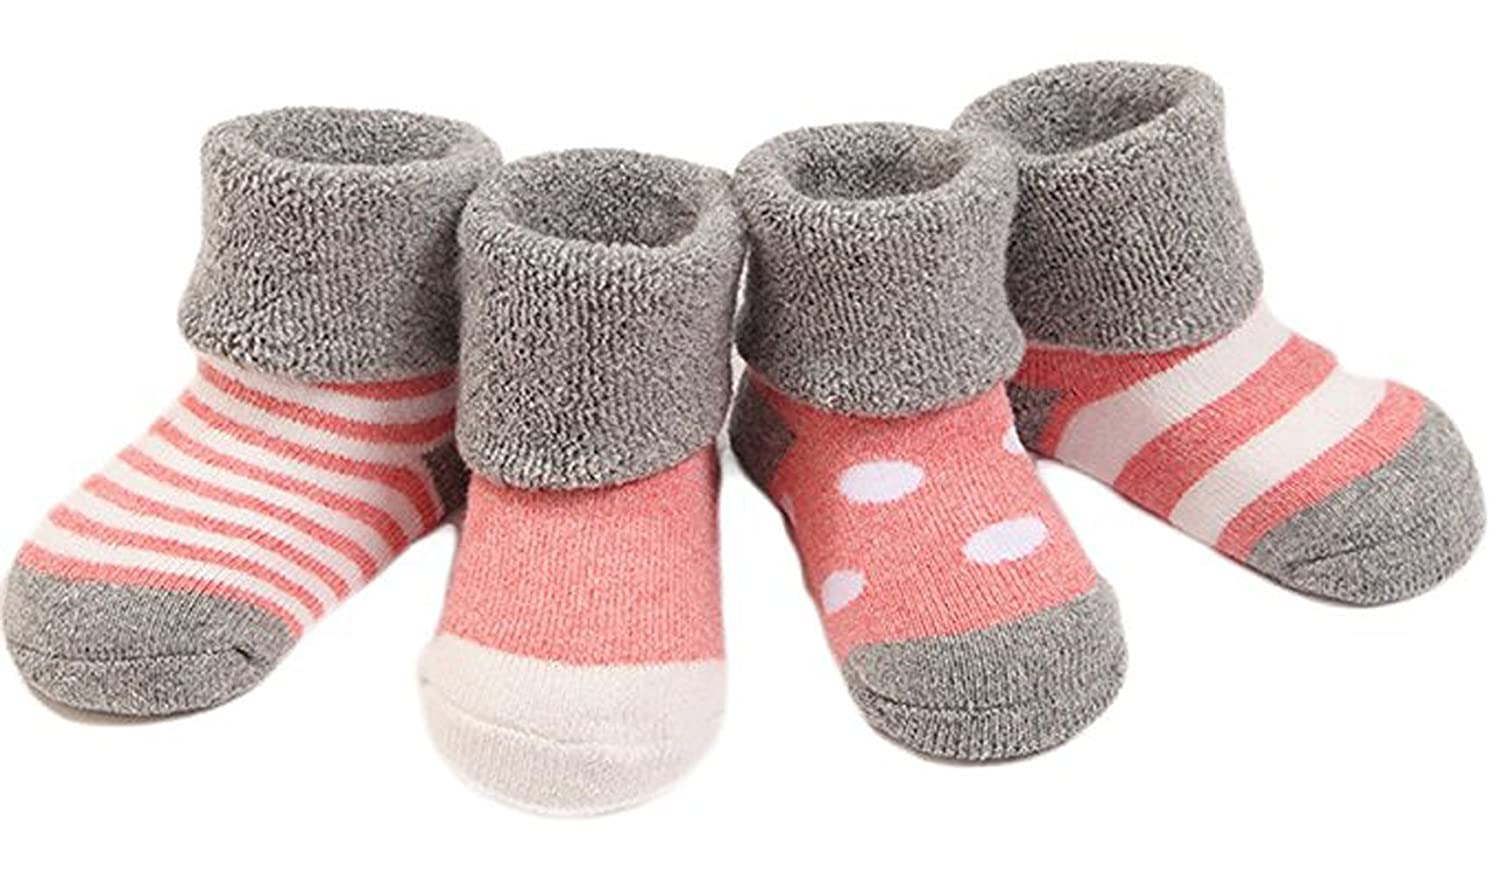 Yodosun 4 Pairs Unisex Baby Toddler Pack Thick Cotton Winter Socks